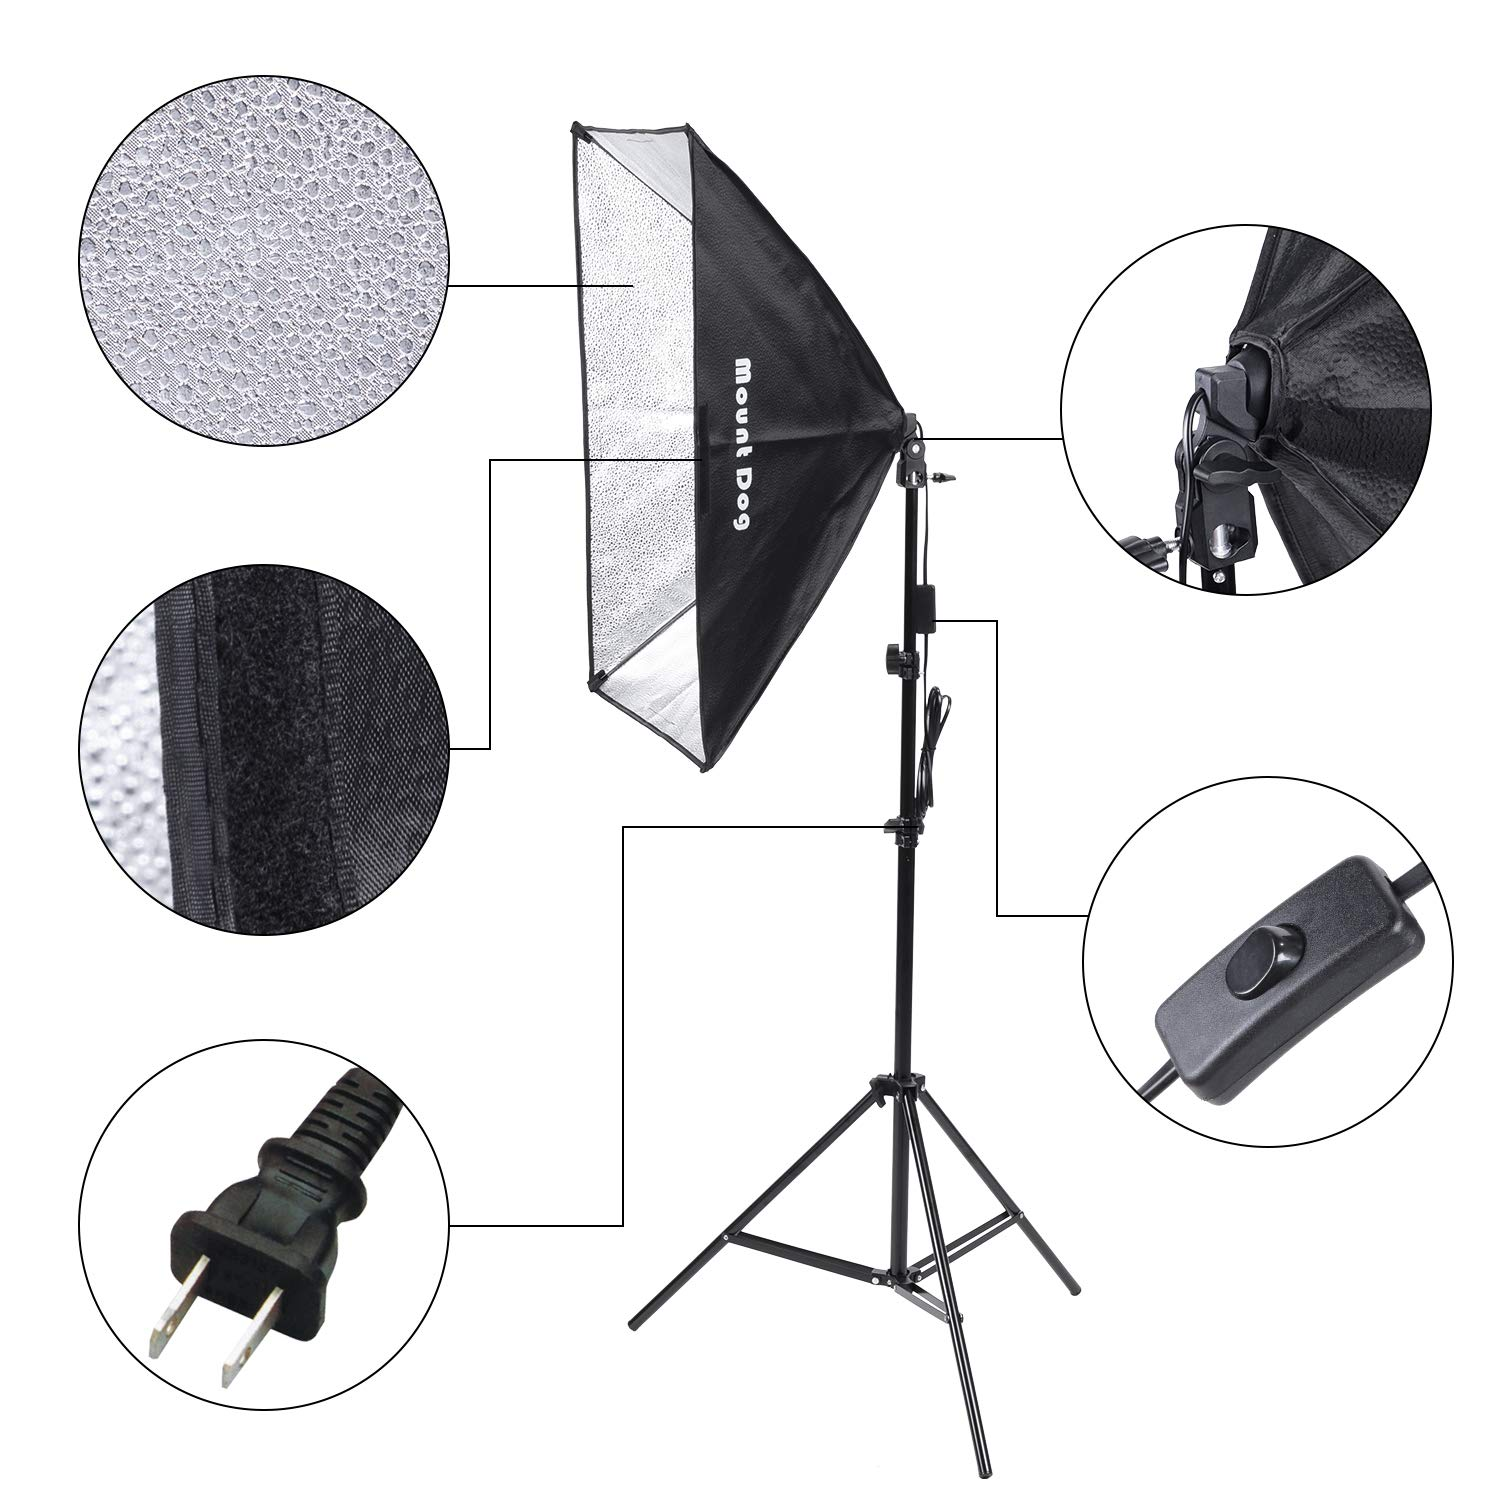 MOUNTDOG 1350W Photography Softbox Lighting Kit 20''X28'' Professional Continuous Light System with 3pcs E27 Video Bulbs 5500K Photo Studio Equipment for Filming Model Portraits Advertising Shooting by MOUNTDOG (Image #6)